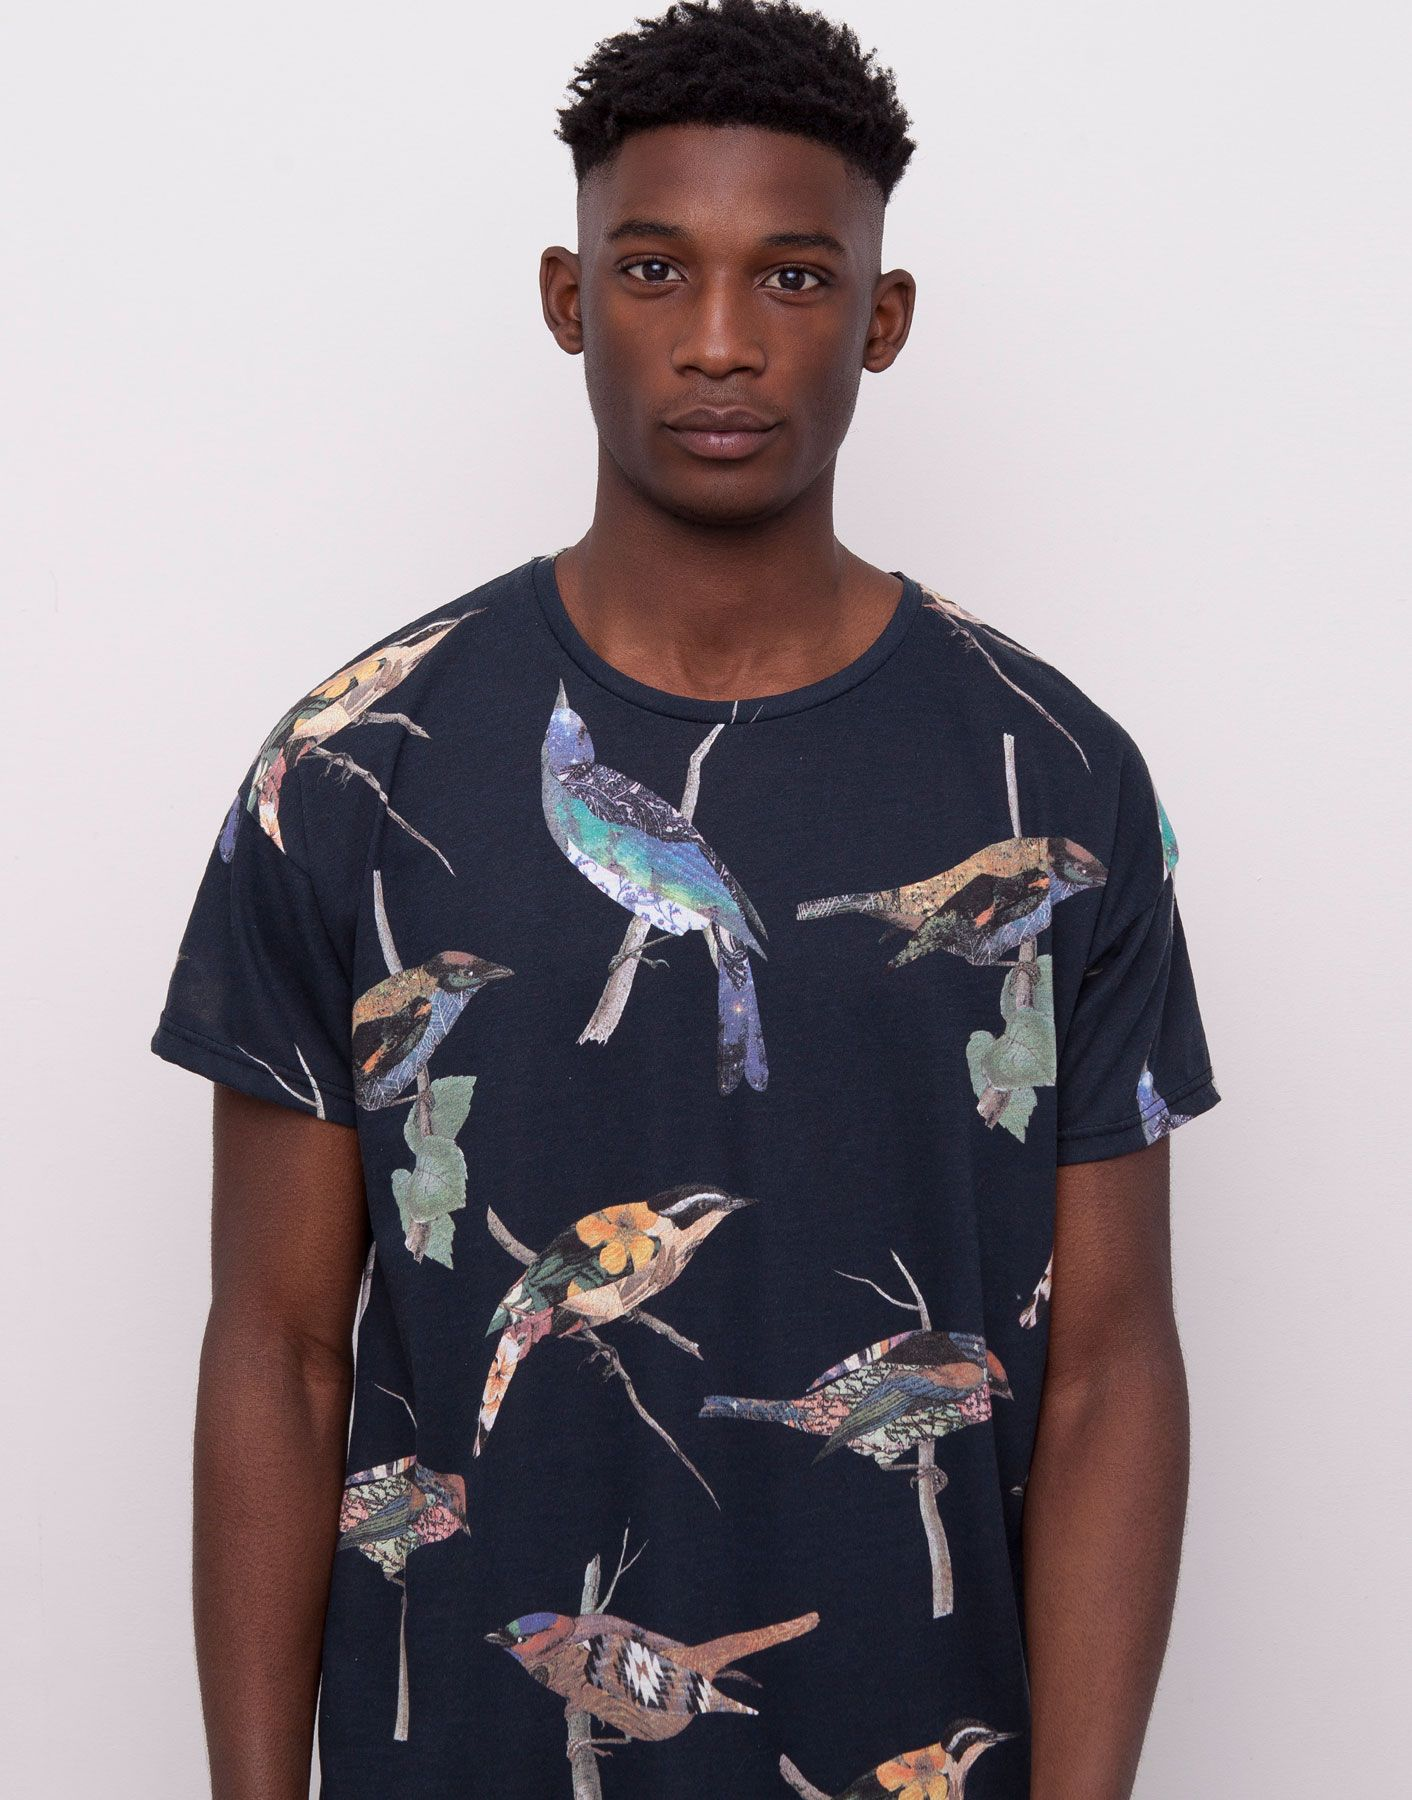 045c71aa36e06 T-SHIRT WITH AN ALL-OVER BIRDS PRINT - T-SHIRTS - MAN - PULL BEAR Germany